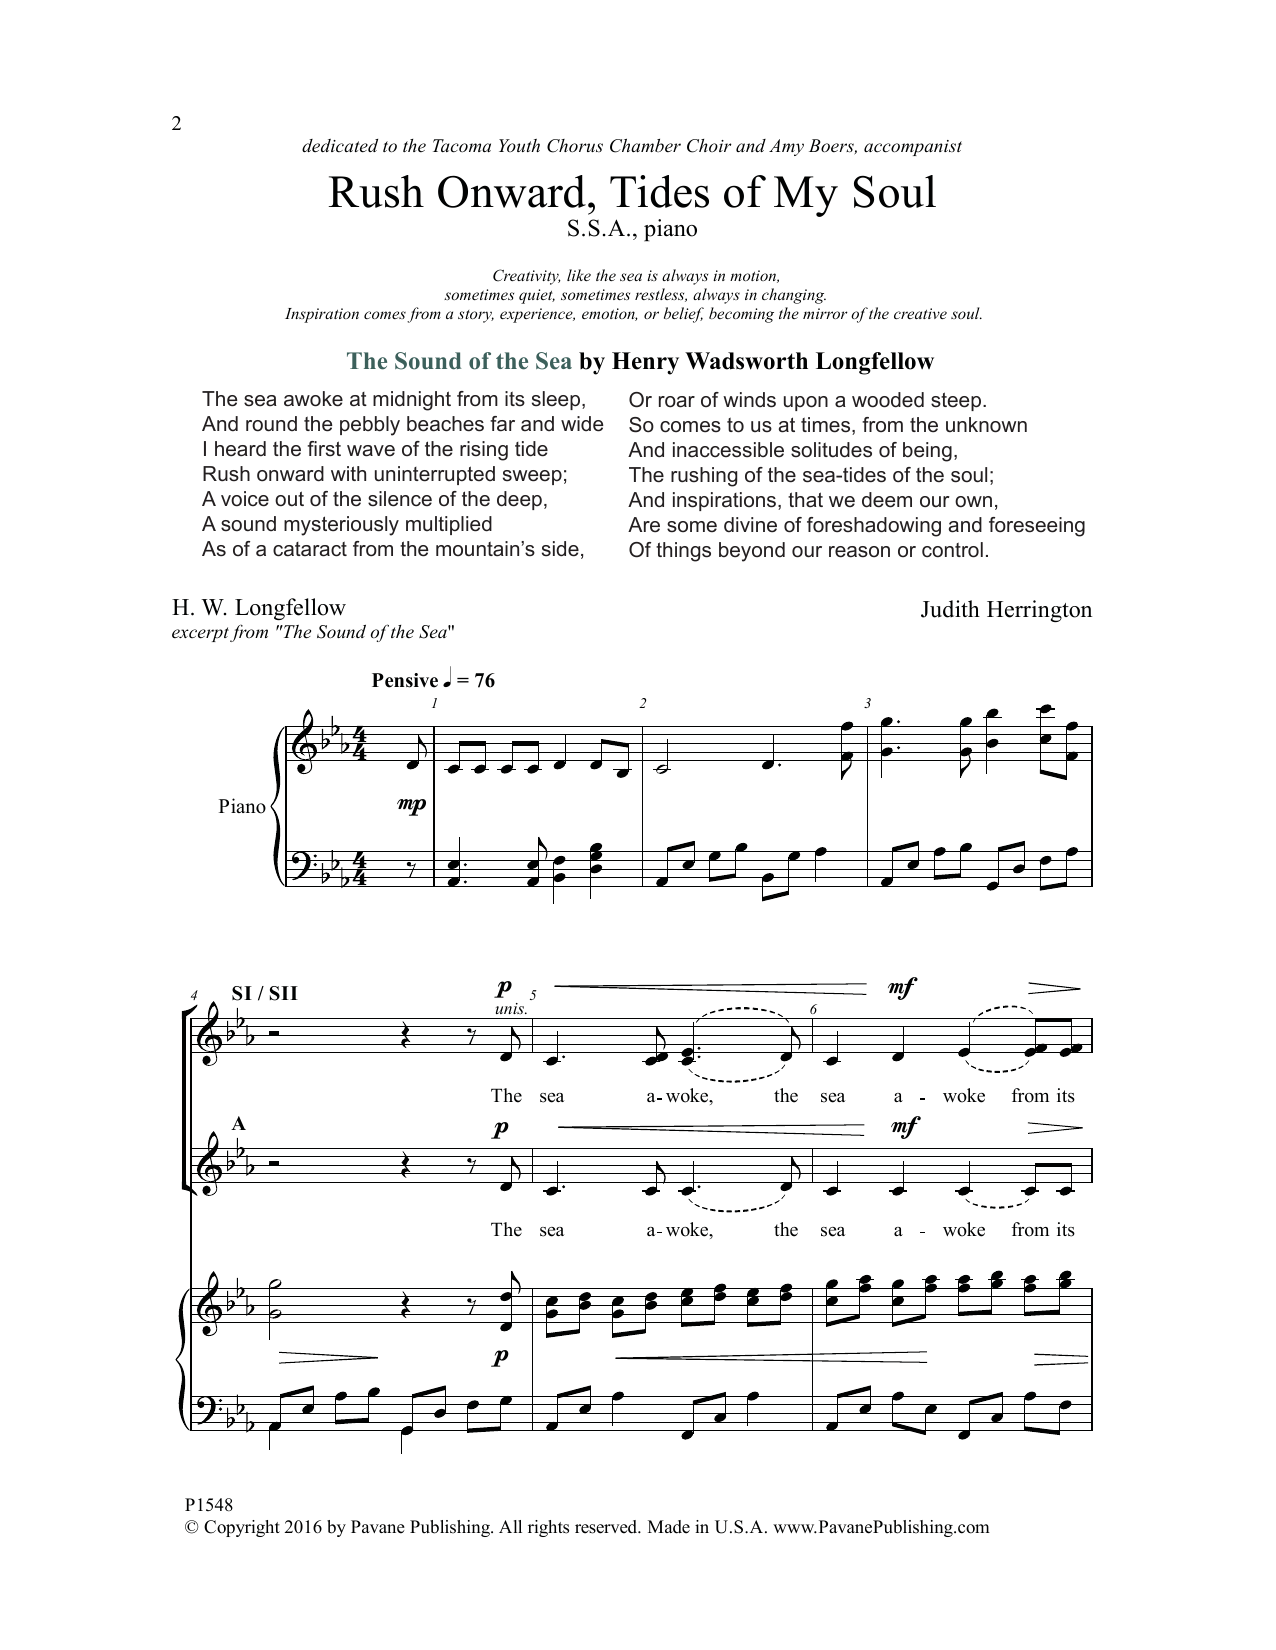 Rush Onward, Tides of My Soul Sheet Music